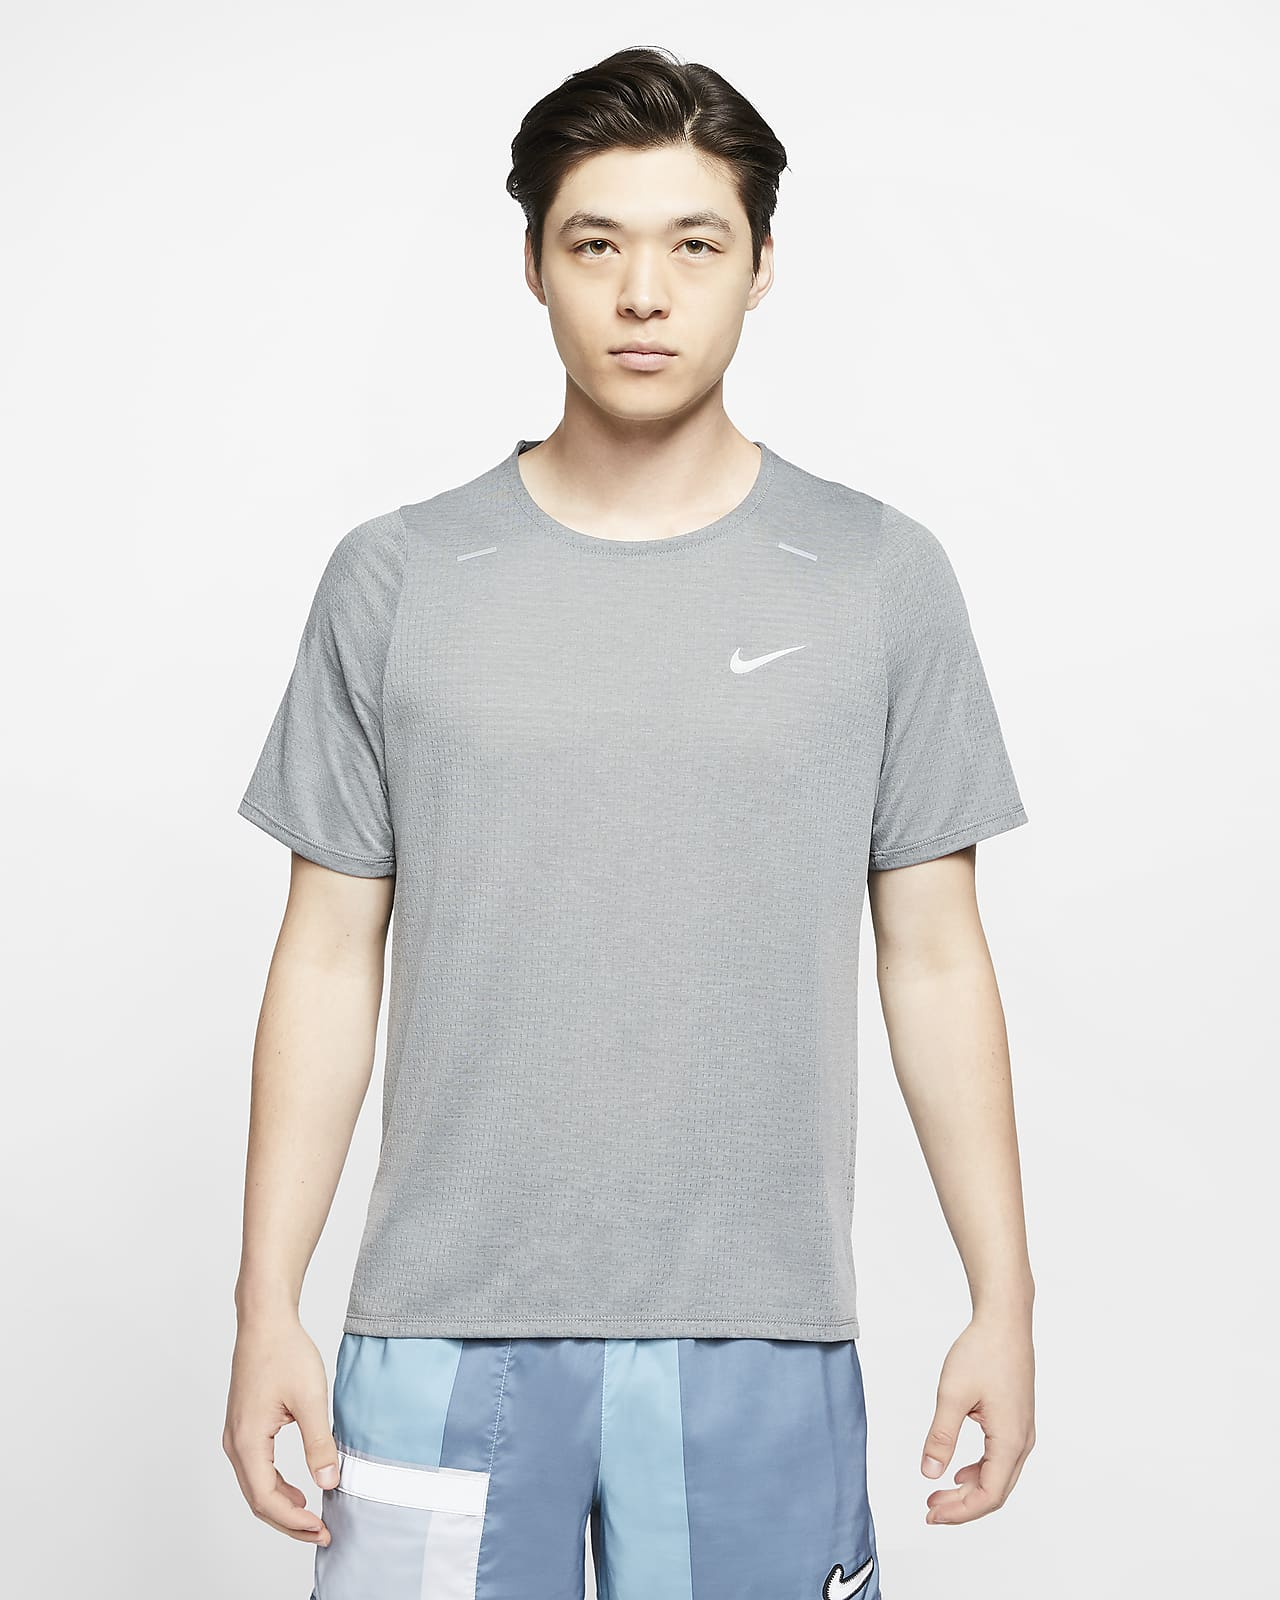 Nike Rise 365 Men's Running Top